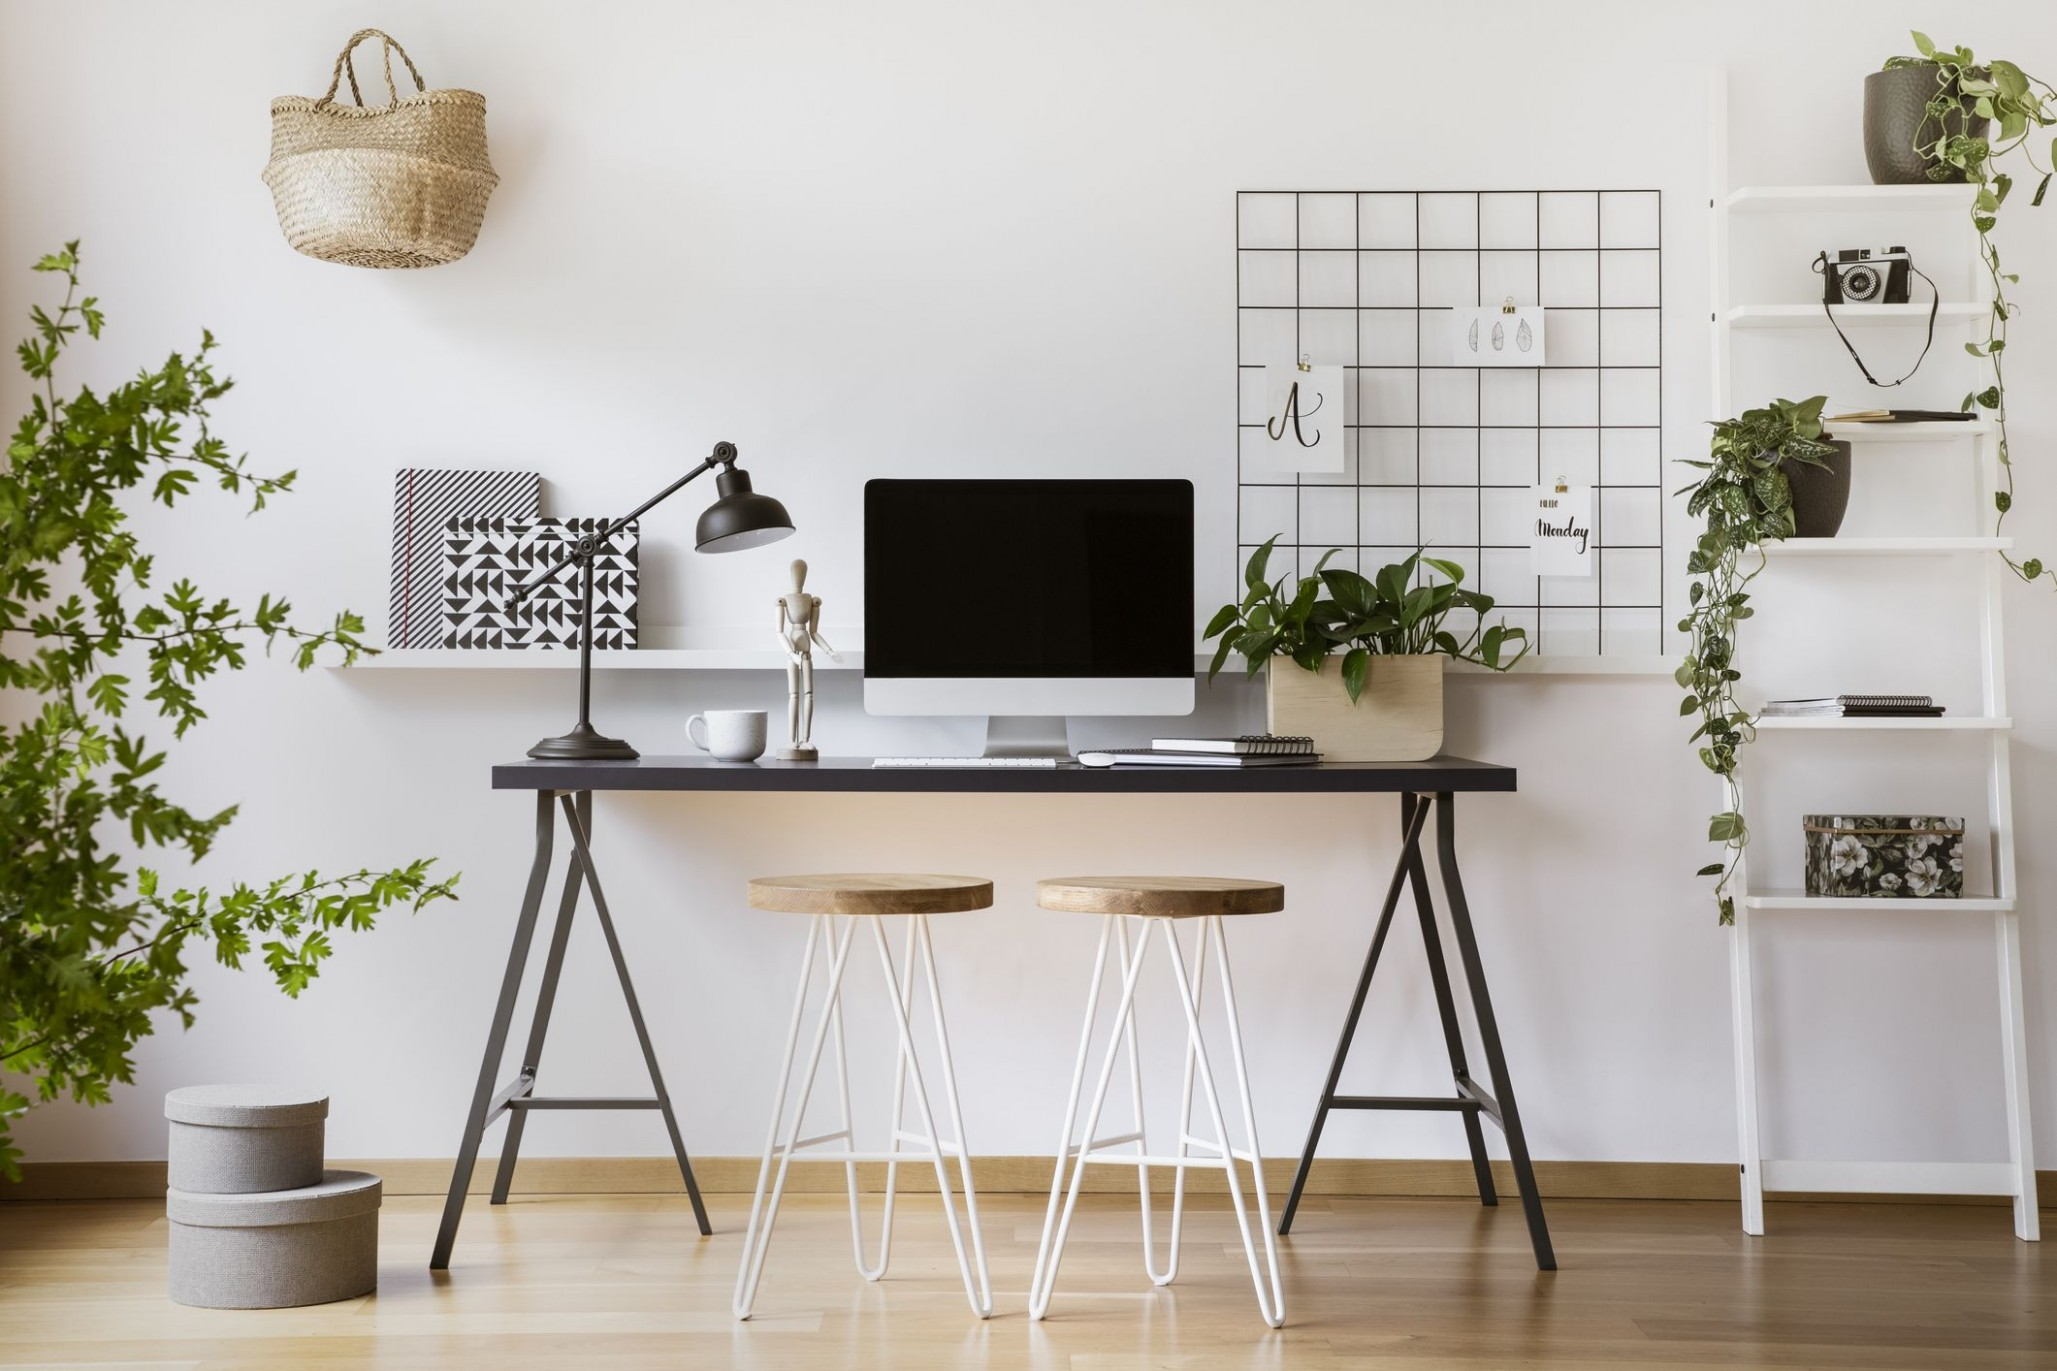 10 DIY Home Office Decor Ideas - Best Home Office Decor Projects - Home Office Table Ideas